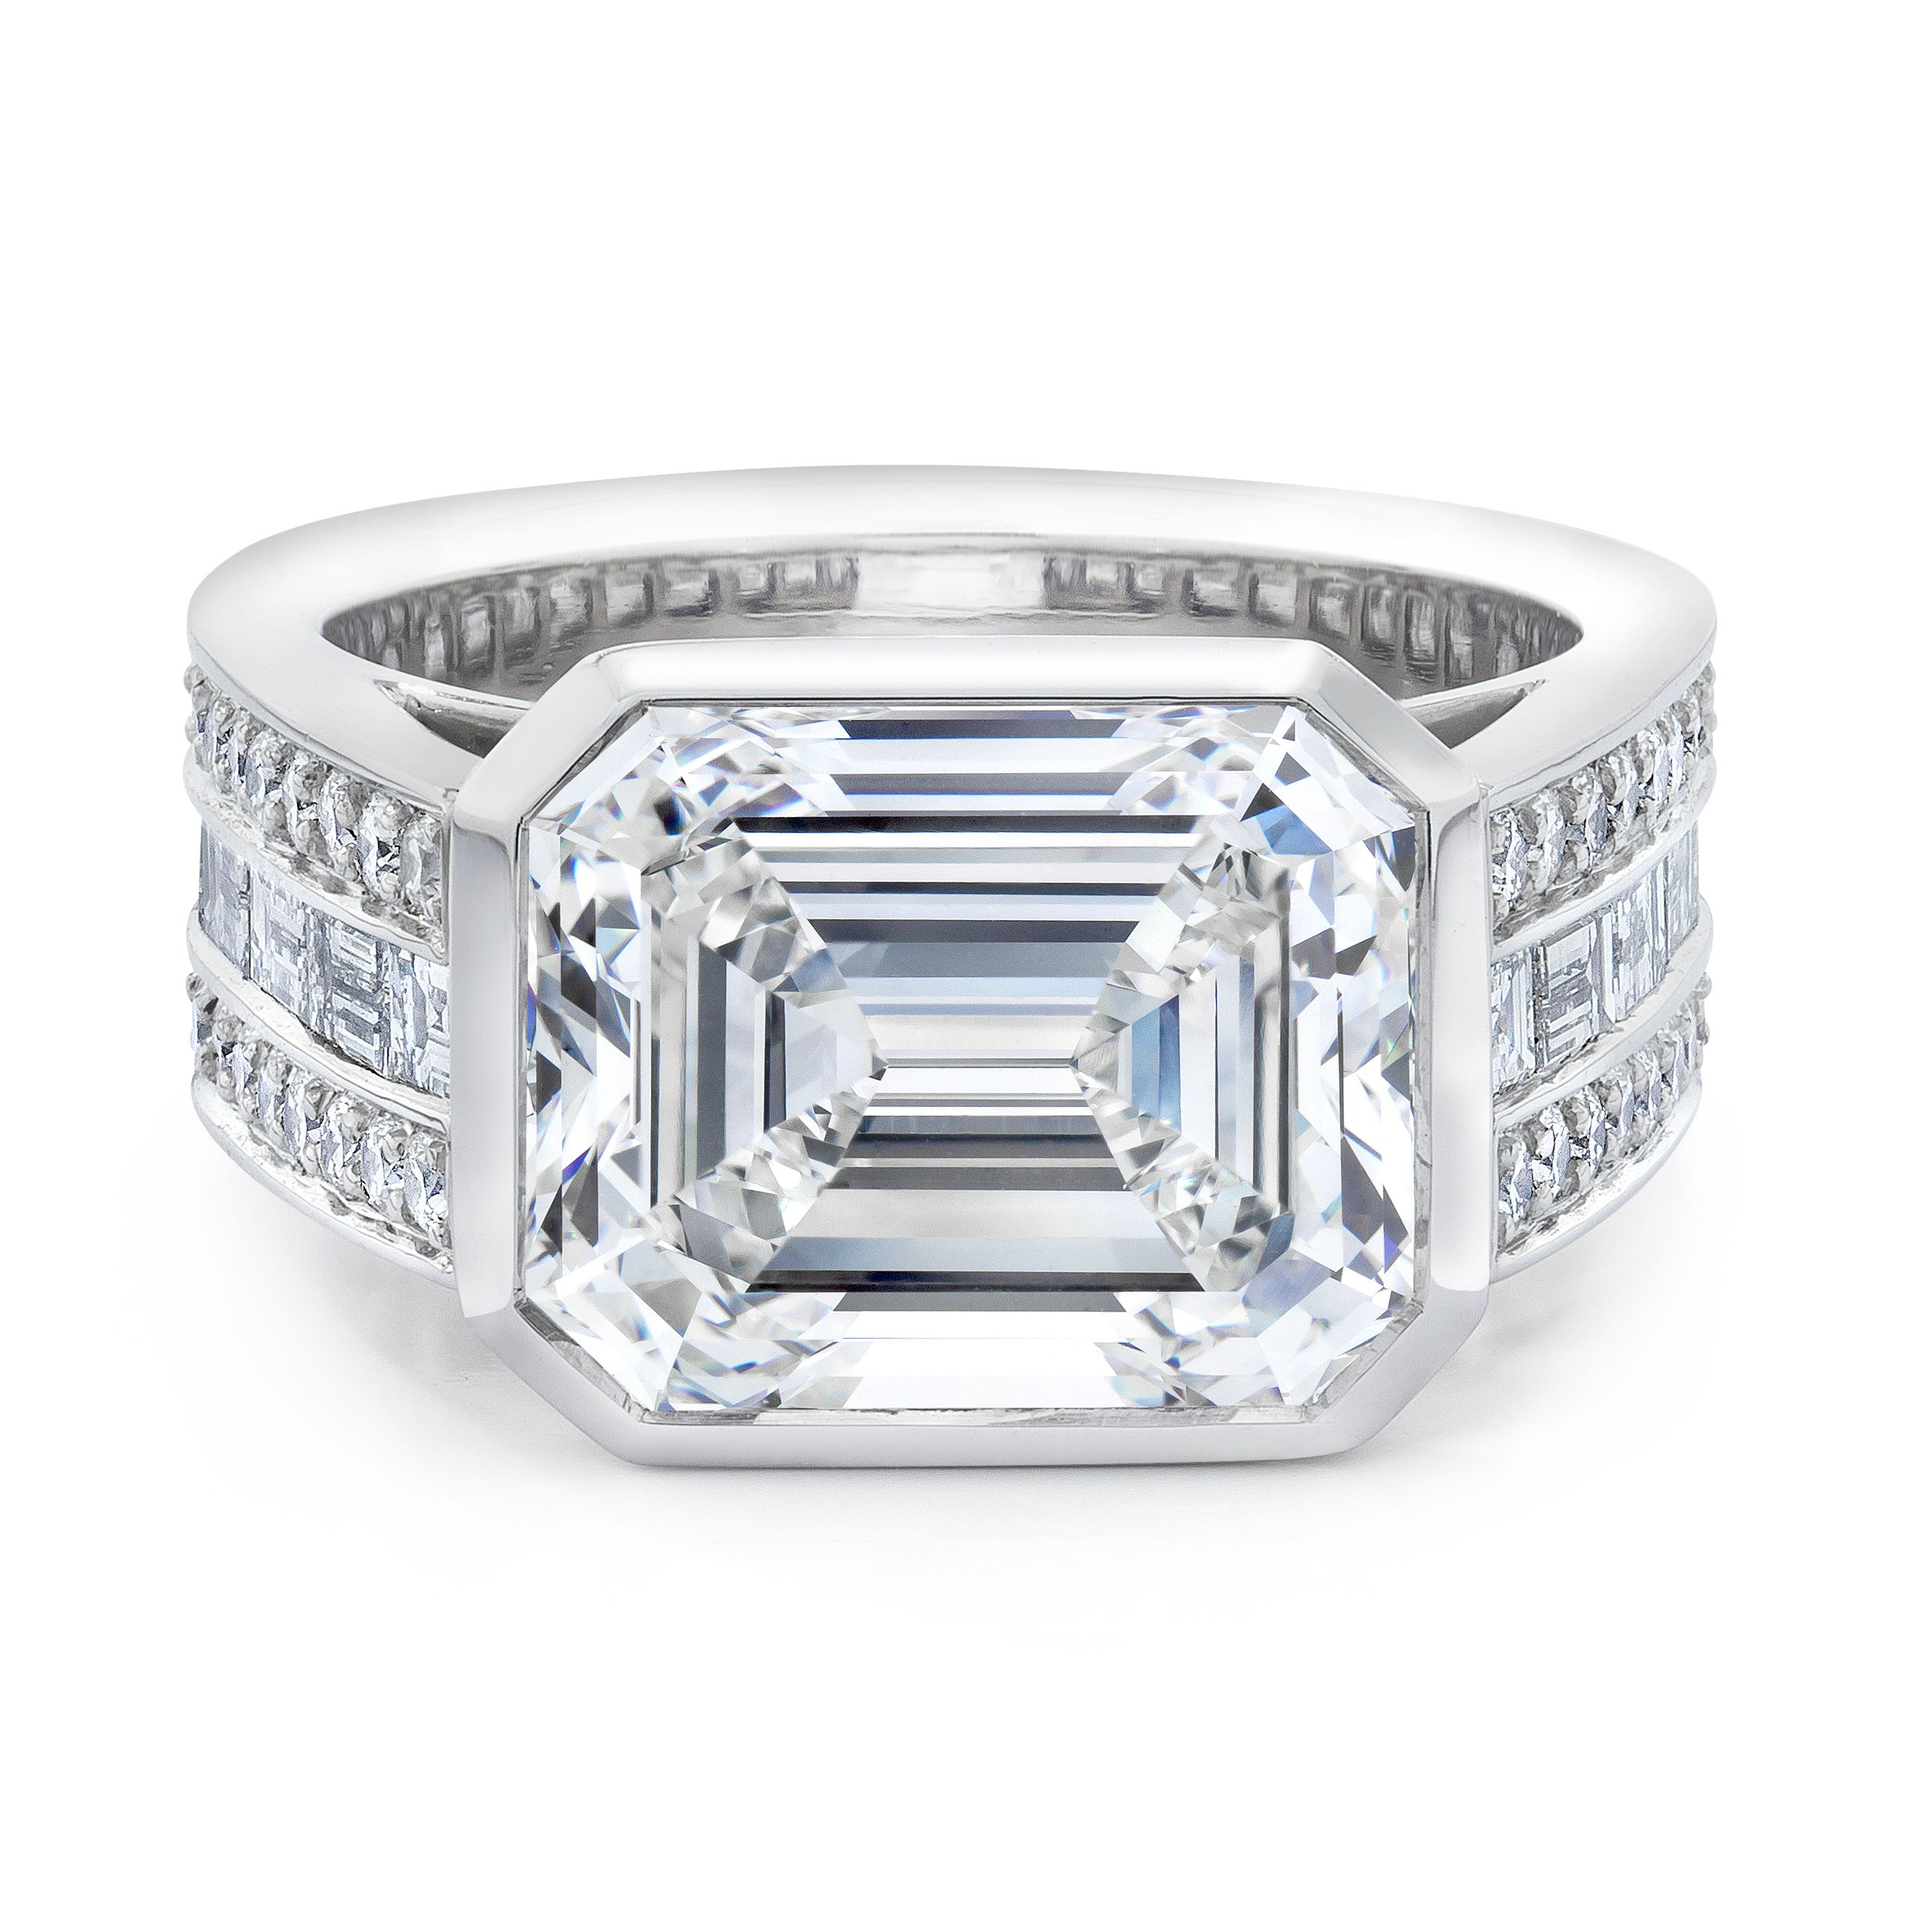 raymond of west emerald blog lee rings lovely boca jewelers ring engagement diamond east cut raton